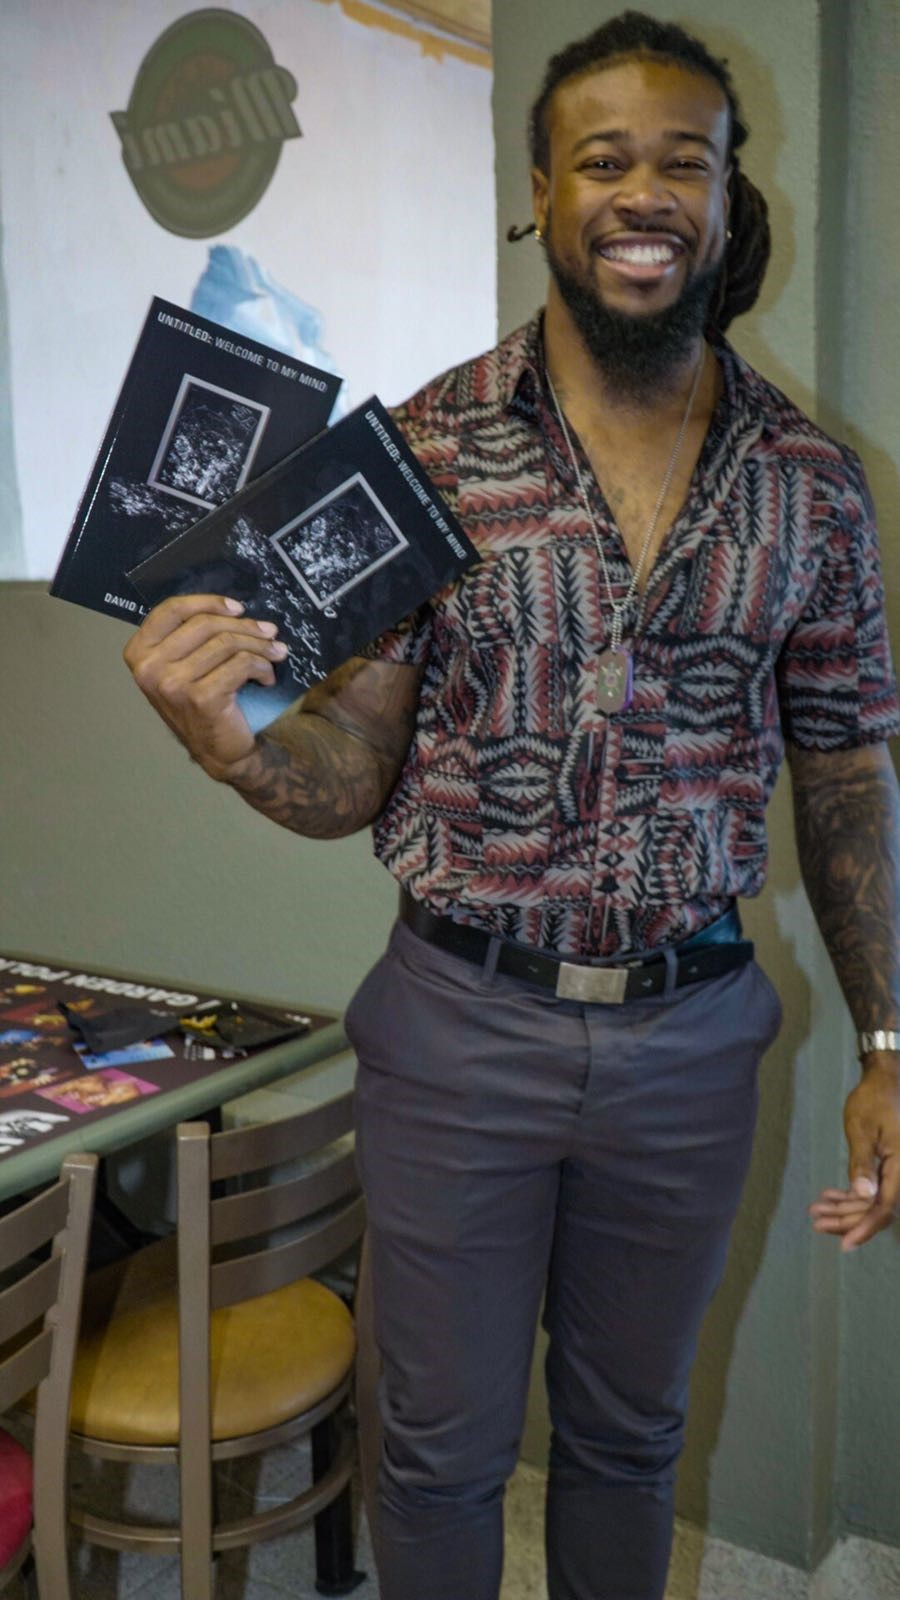 David L. Jackson holding copies of book - Untitled, welcome to my mind